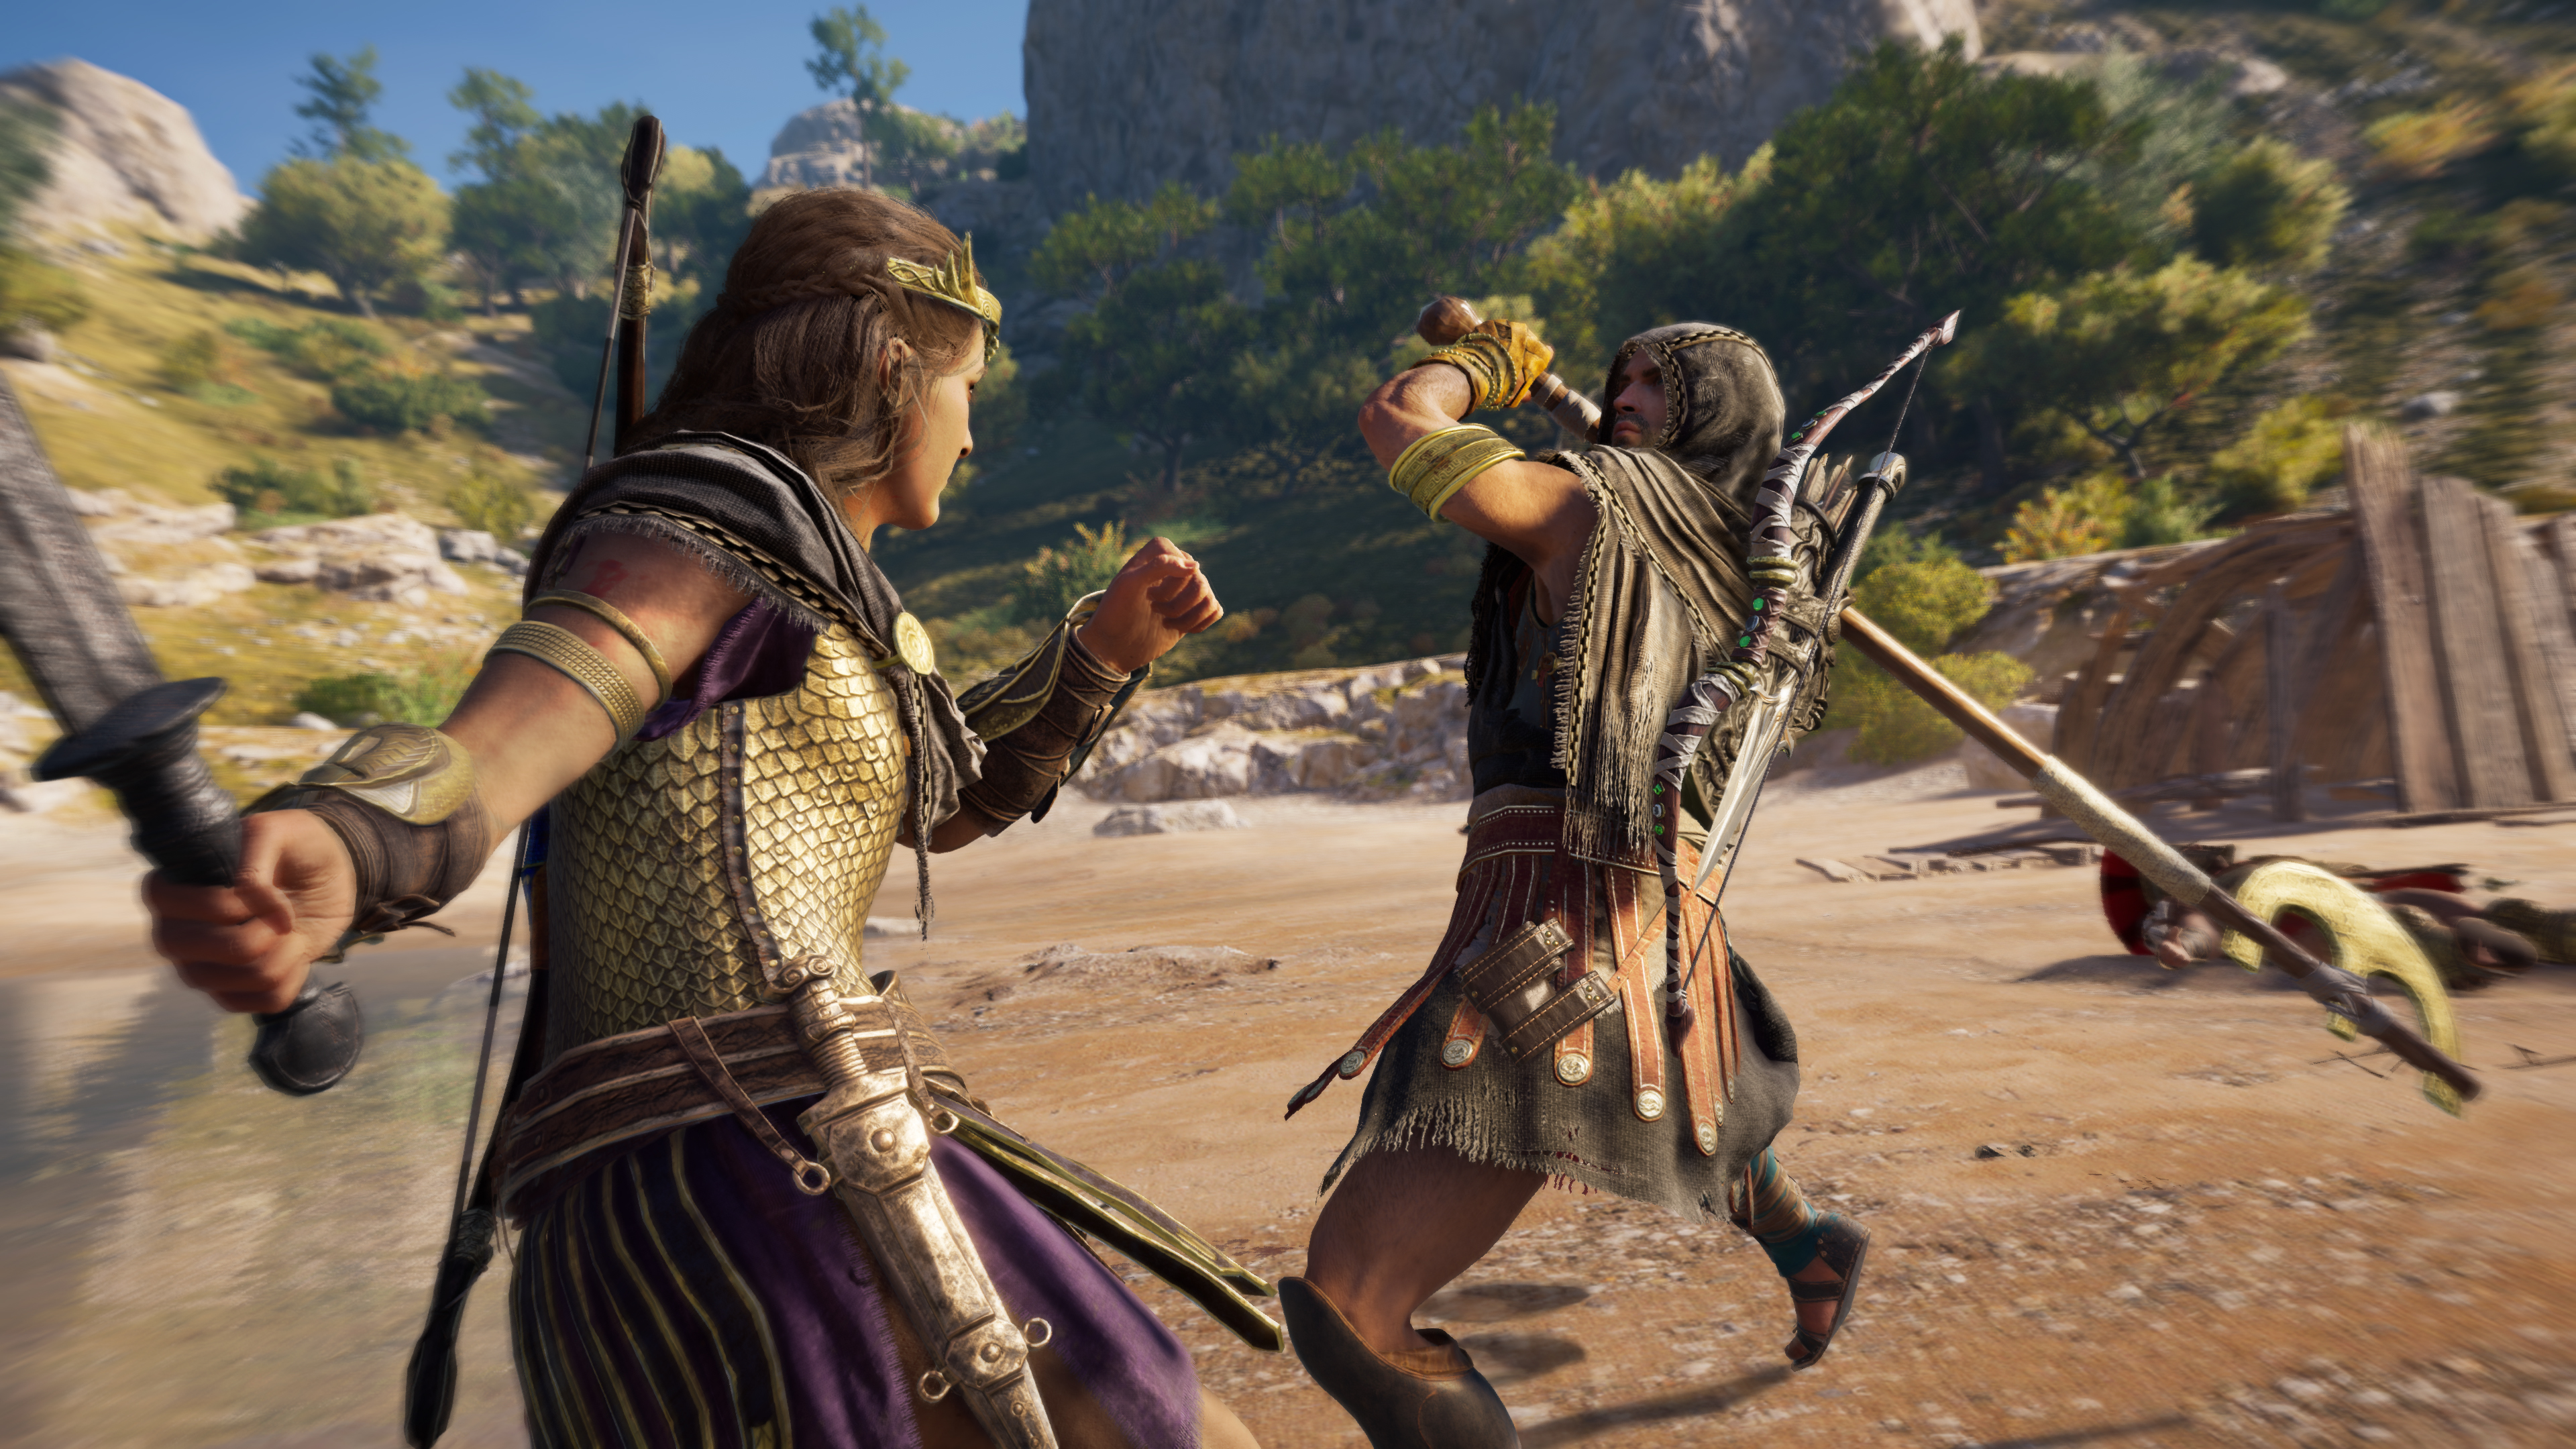 Assassin's Creed Odyssey Refined The Series' Combat